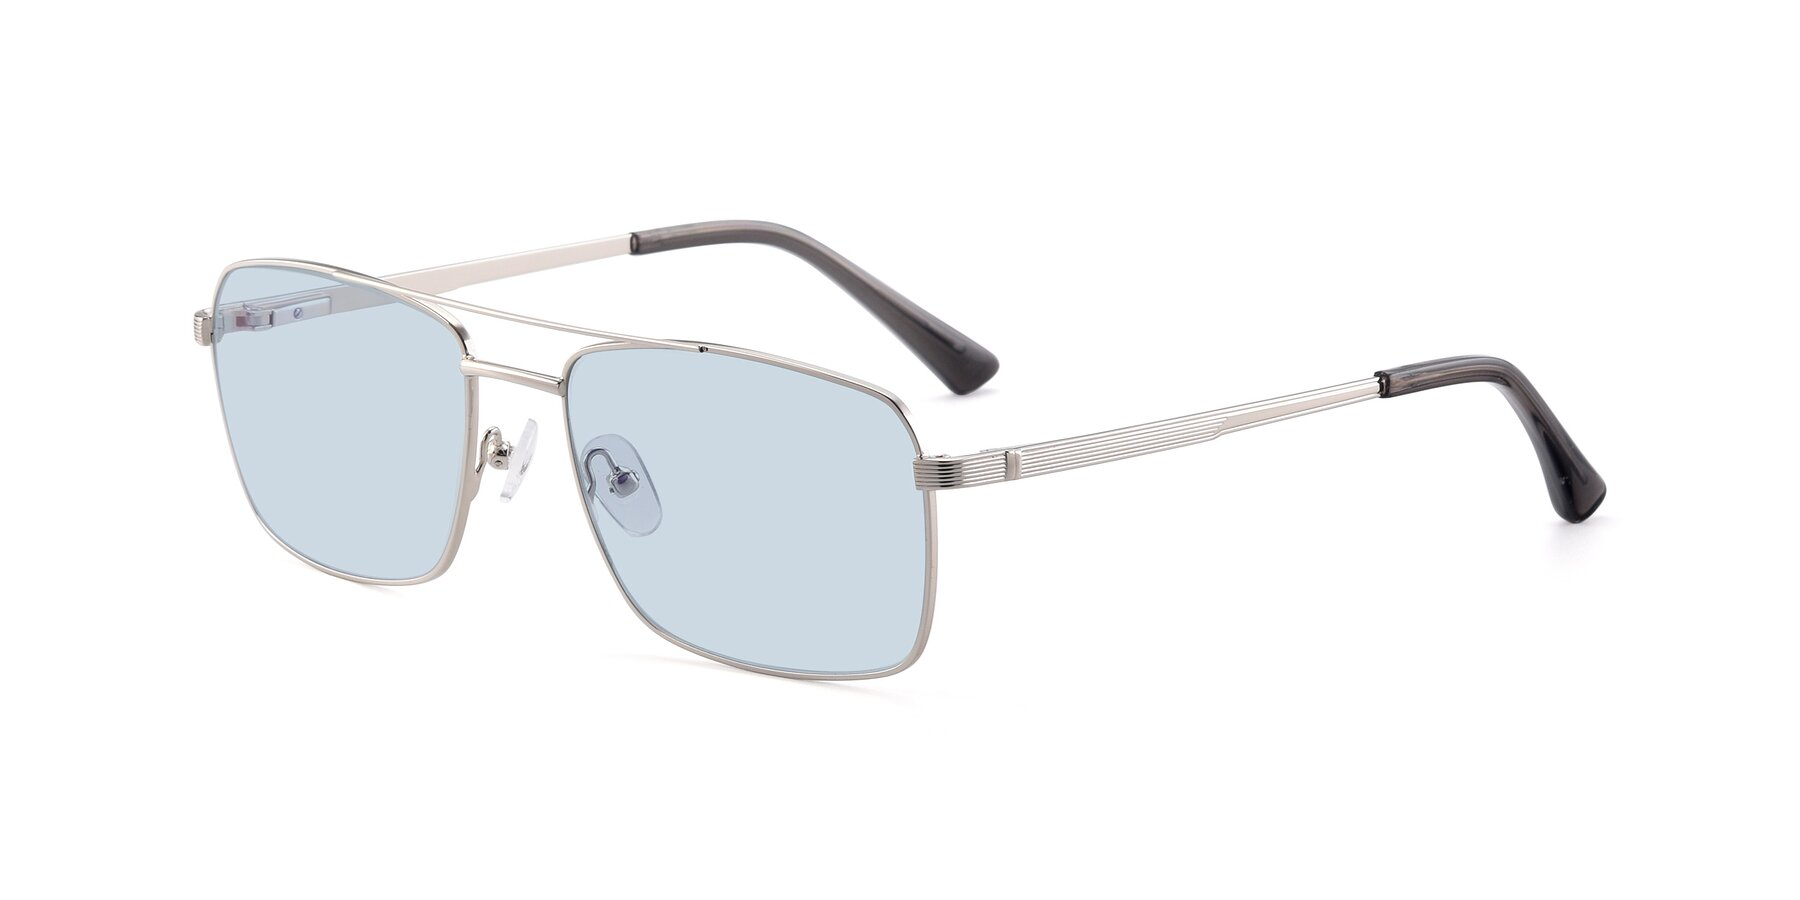 Angle of 9469 in Silver with Light Blue Tinted Lenses